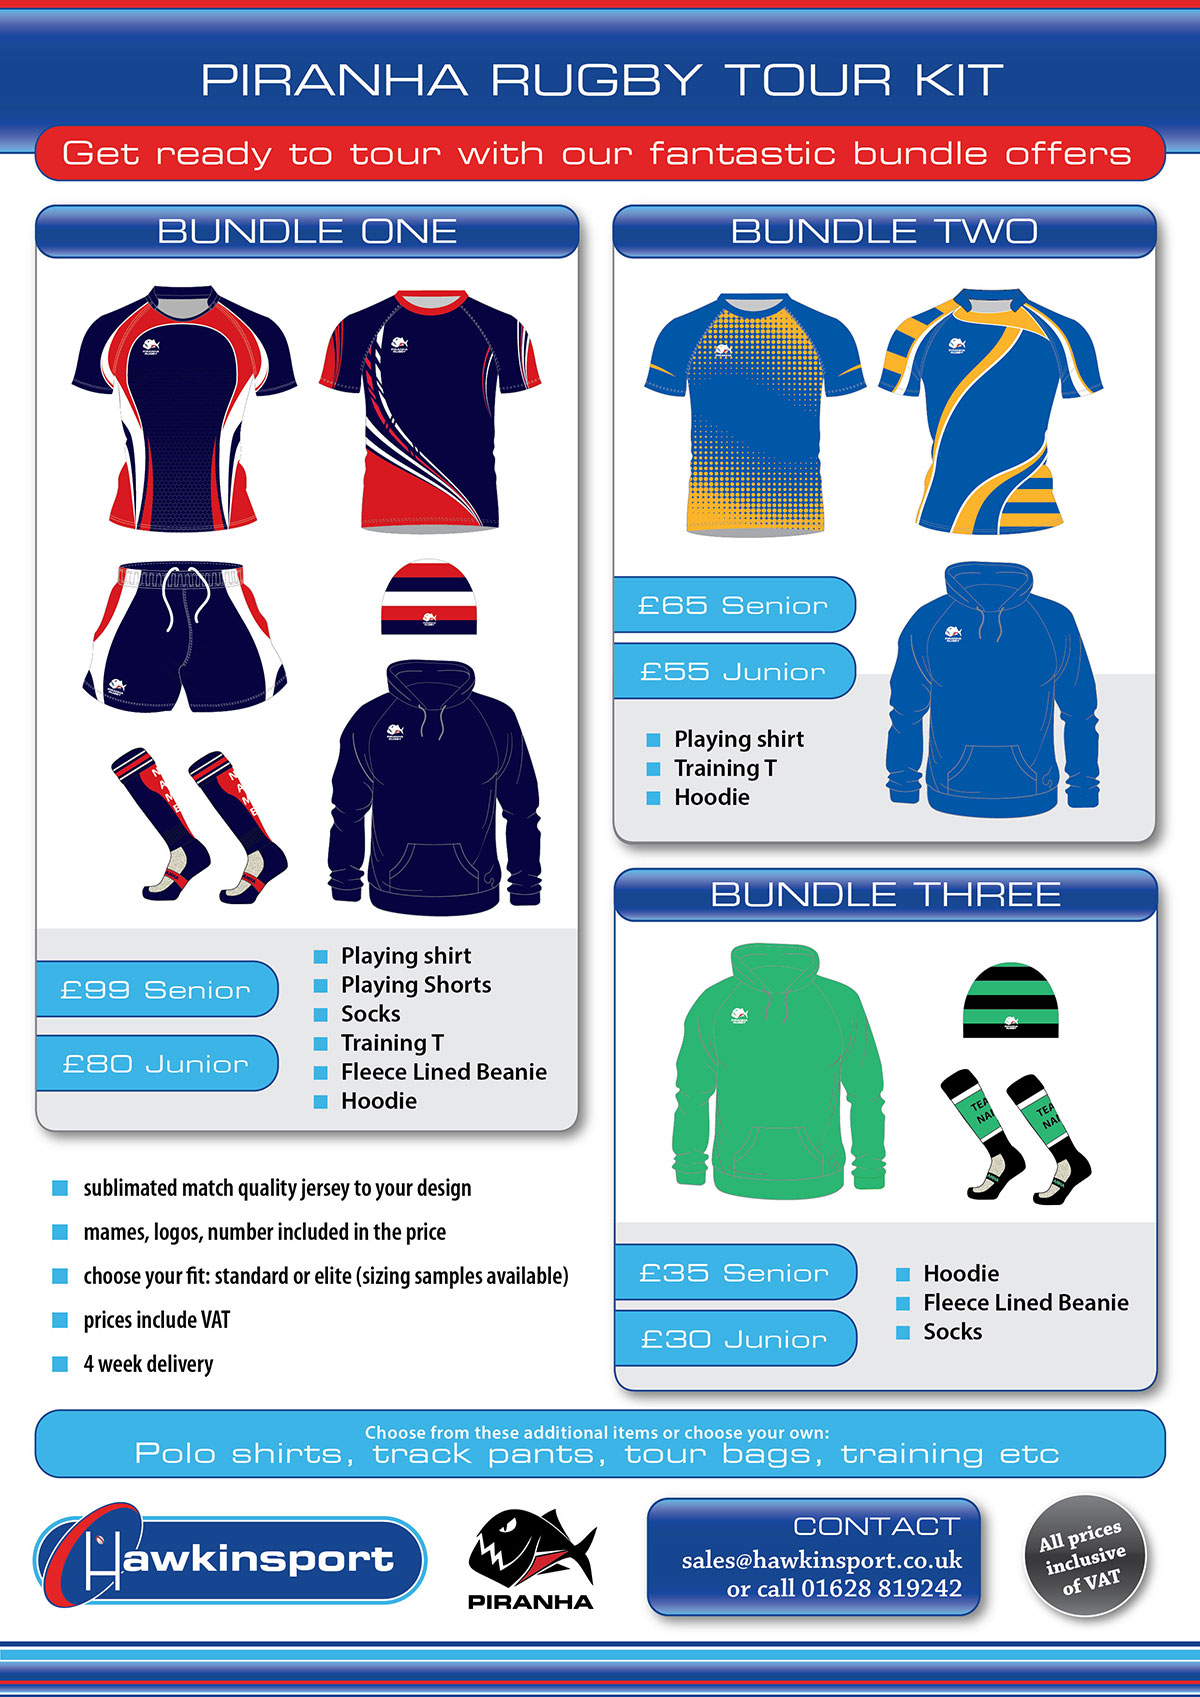 Piranha Tour Kit Rugby